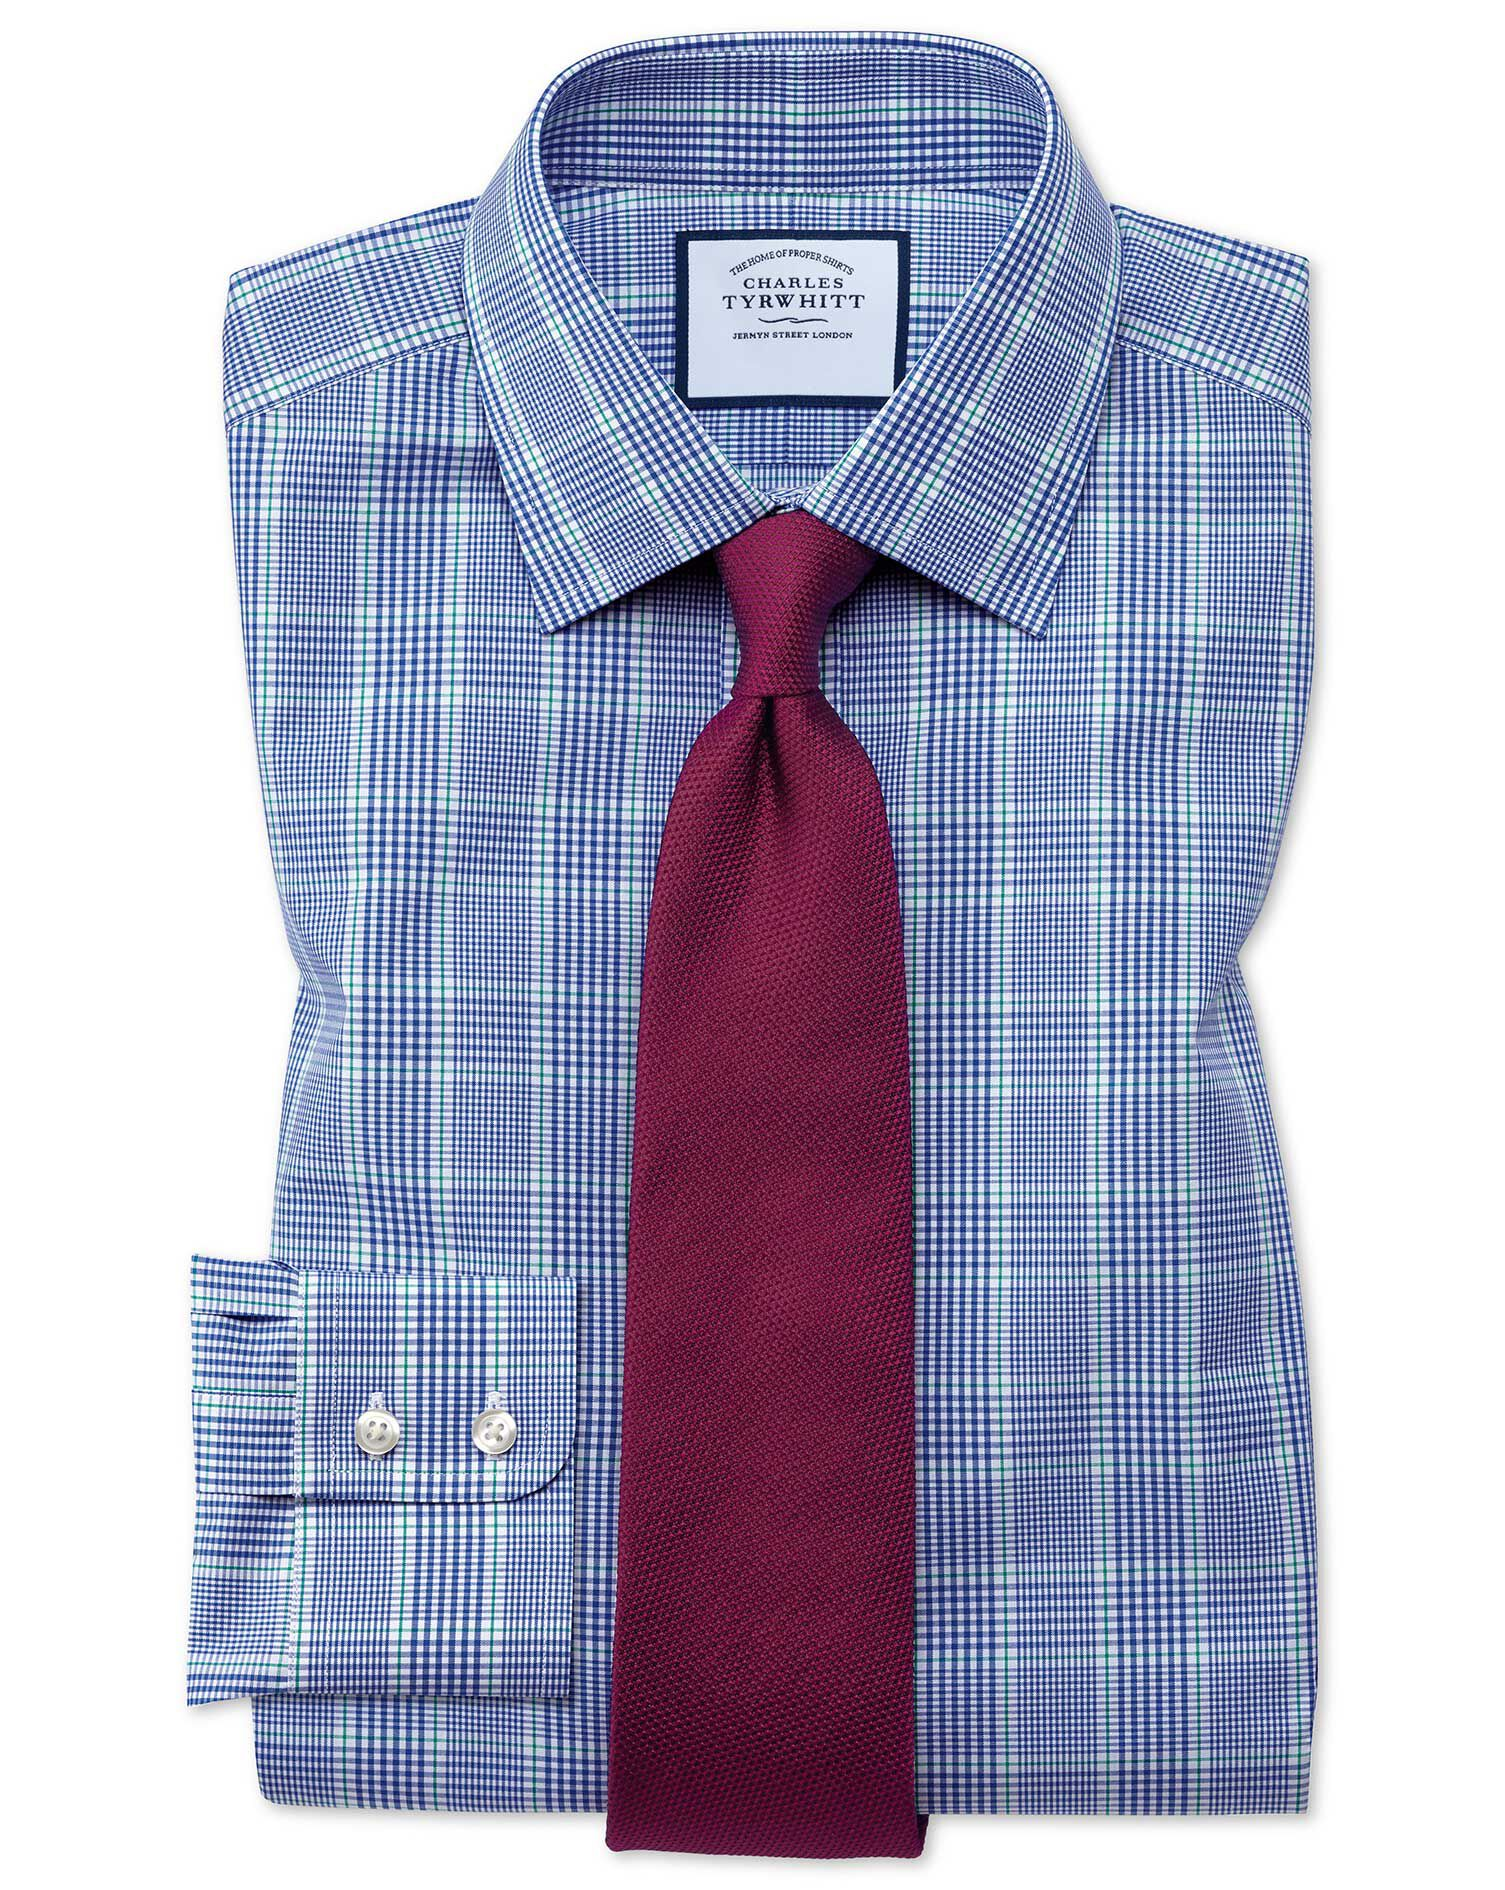 Charles Tyrwhitt Slim Fit Prince Of Wales Check Blue and Green Cotton Formal Shirt Size 17/35